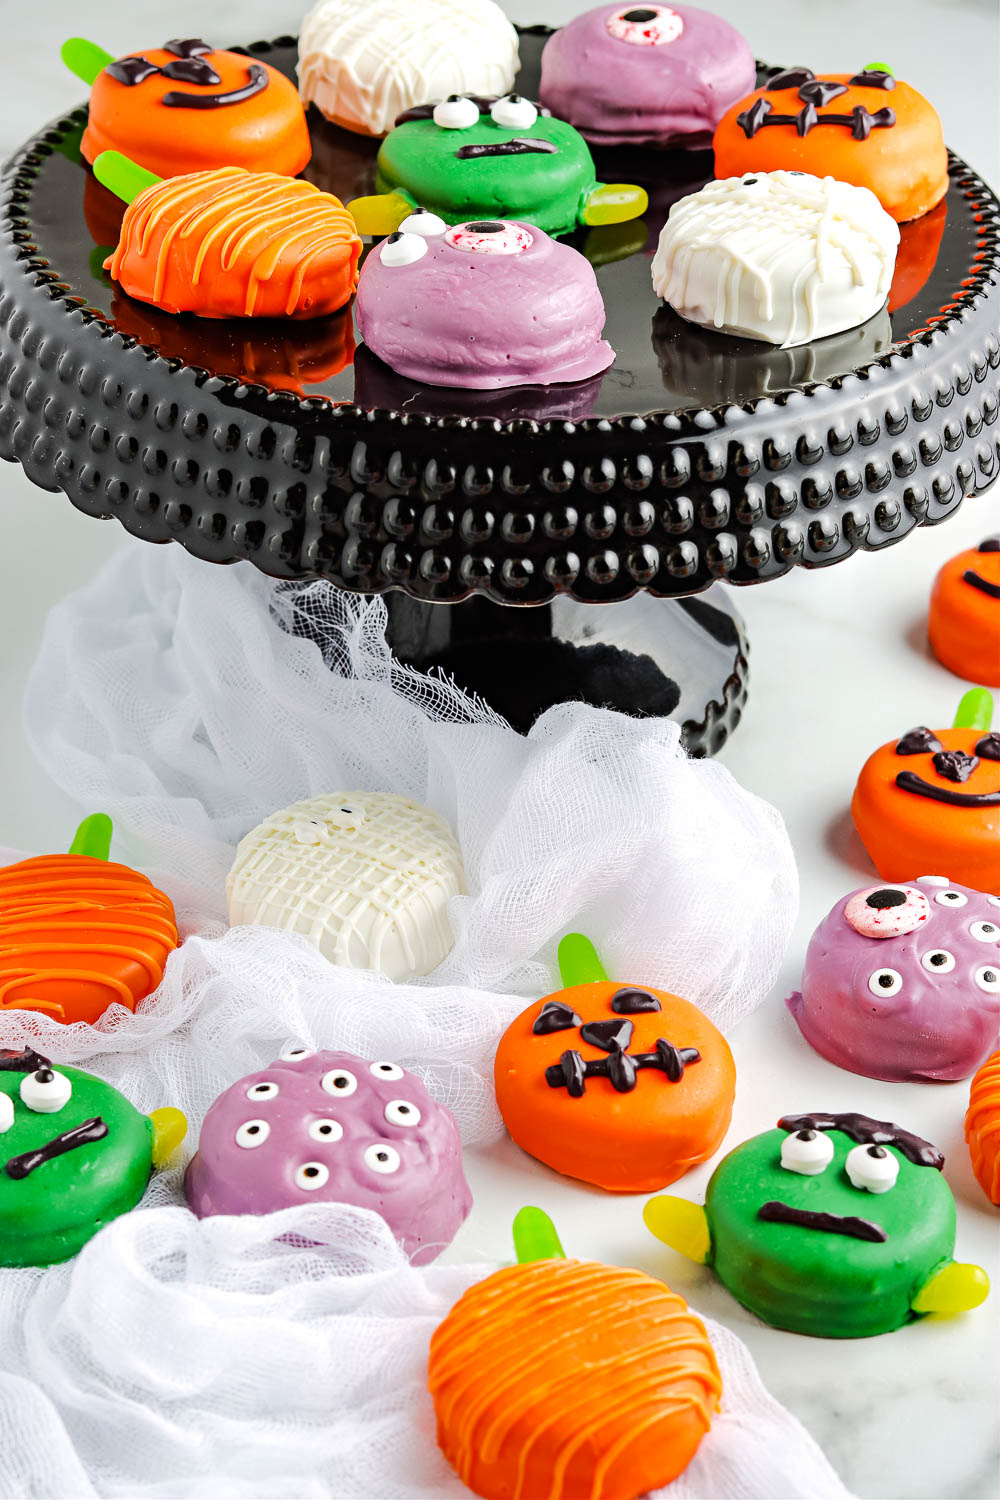 Chocolate dipped Oreos decorated for Halloween on a black cake stand and marble counter top.